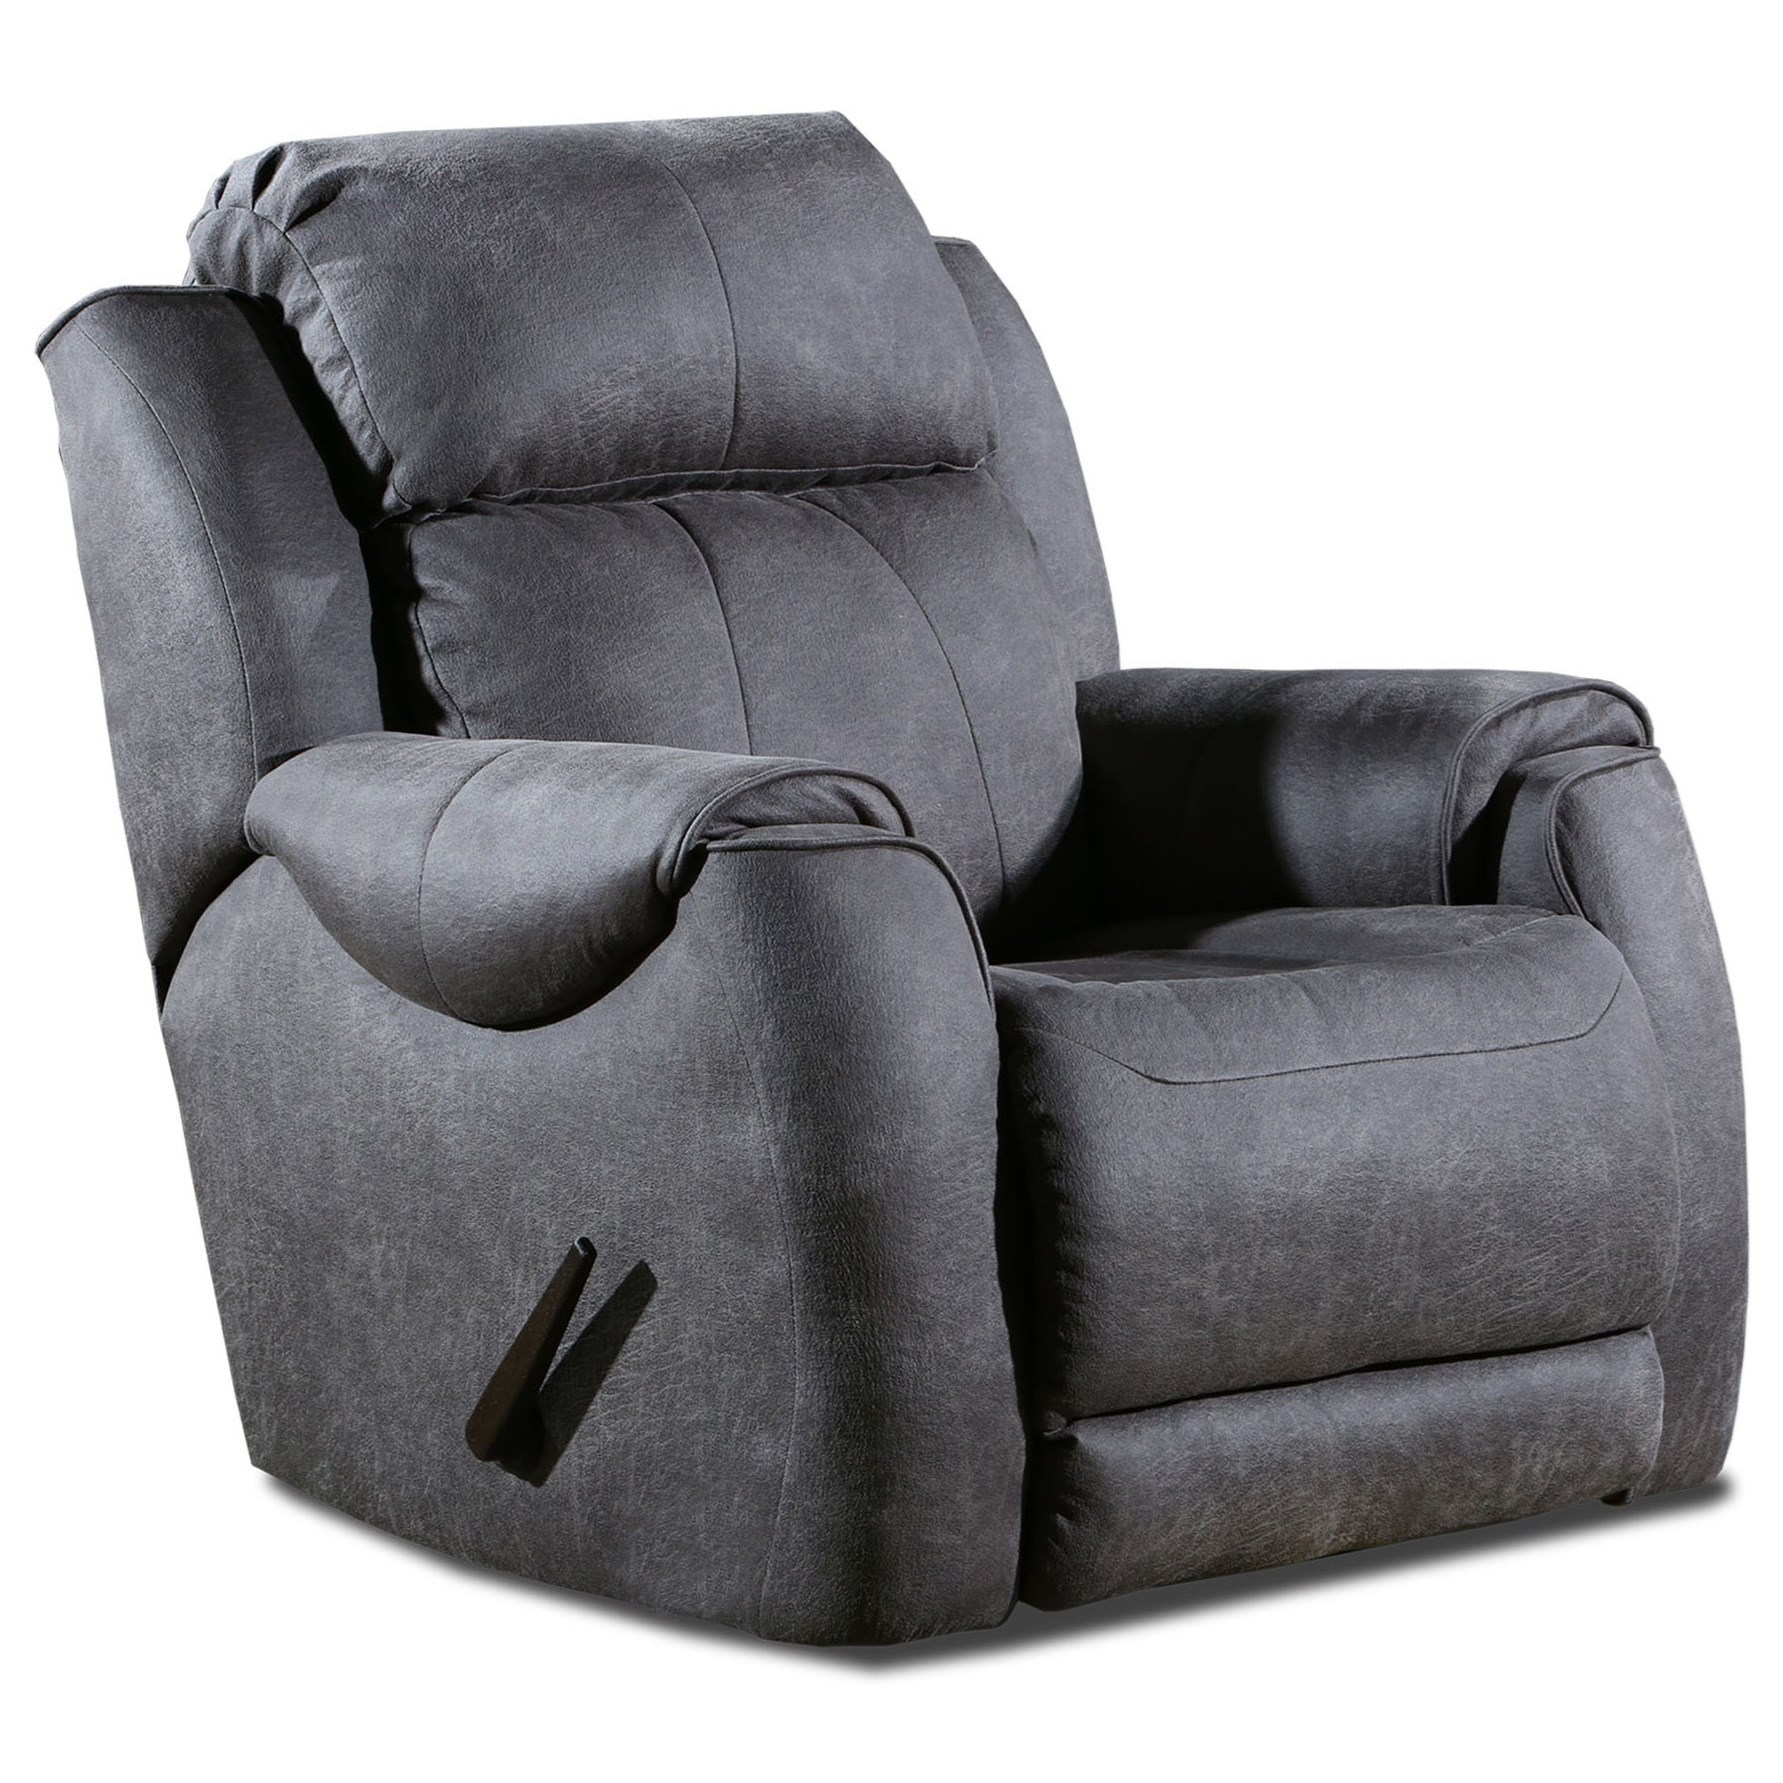 Safe Bet Swivel Rocker Recliner by Southern Motion at Sparks HomeStore